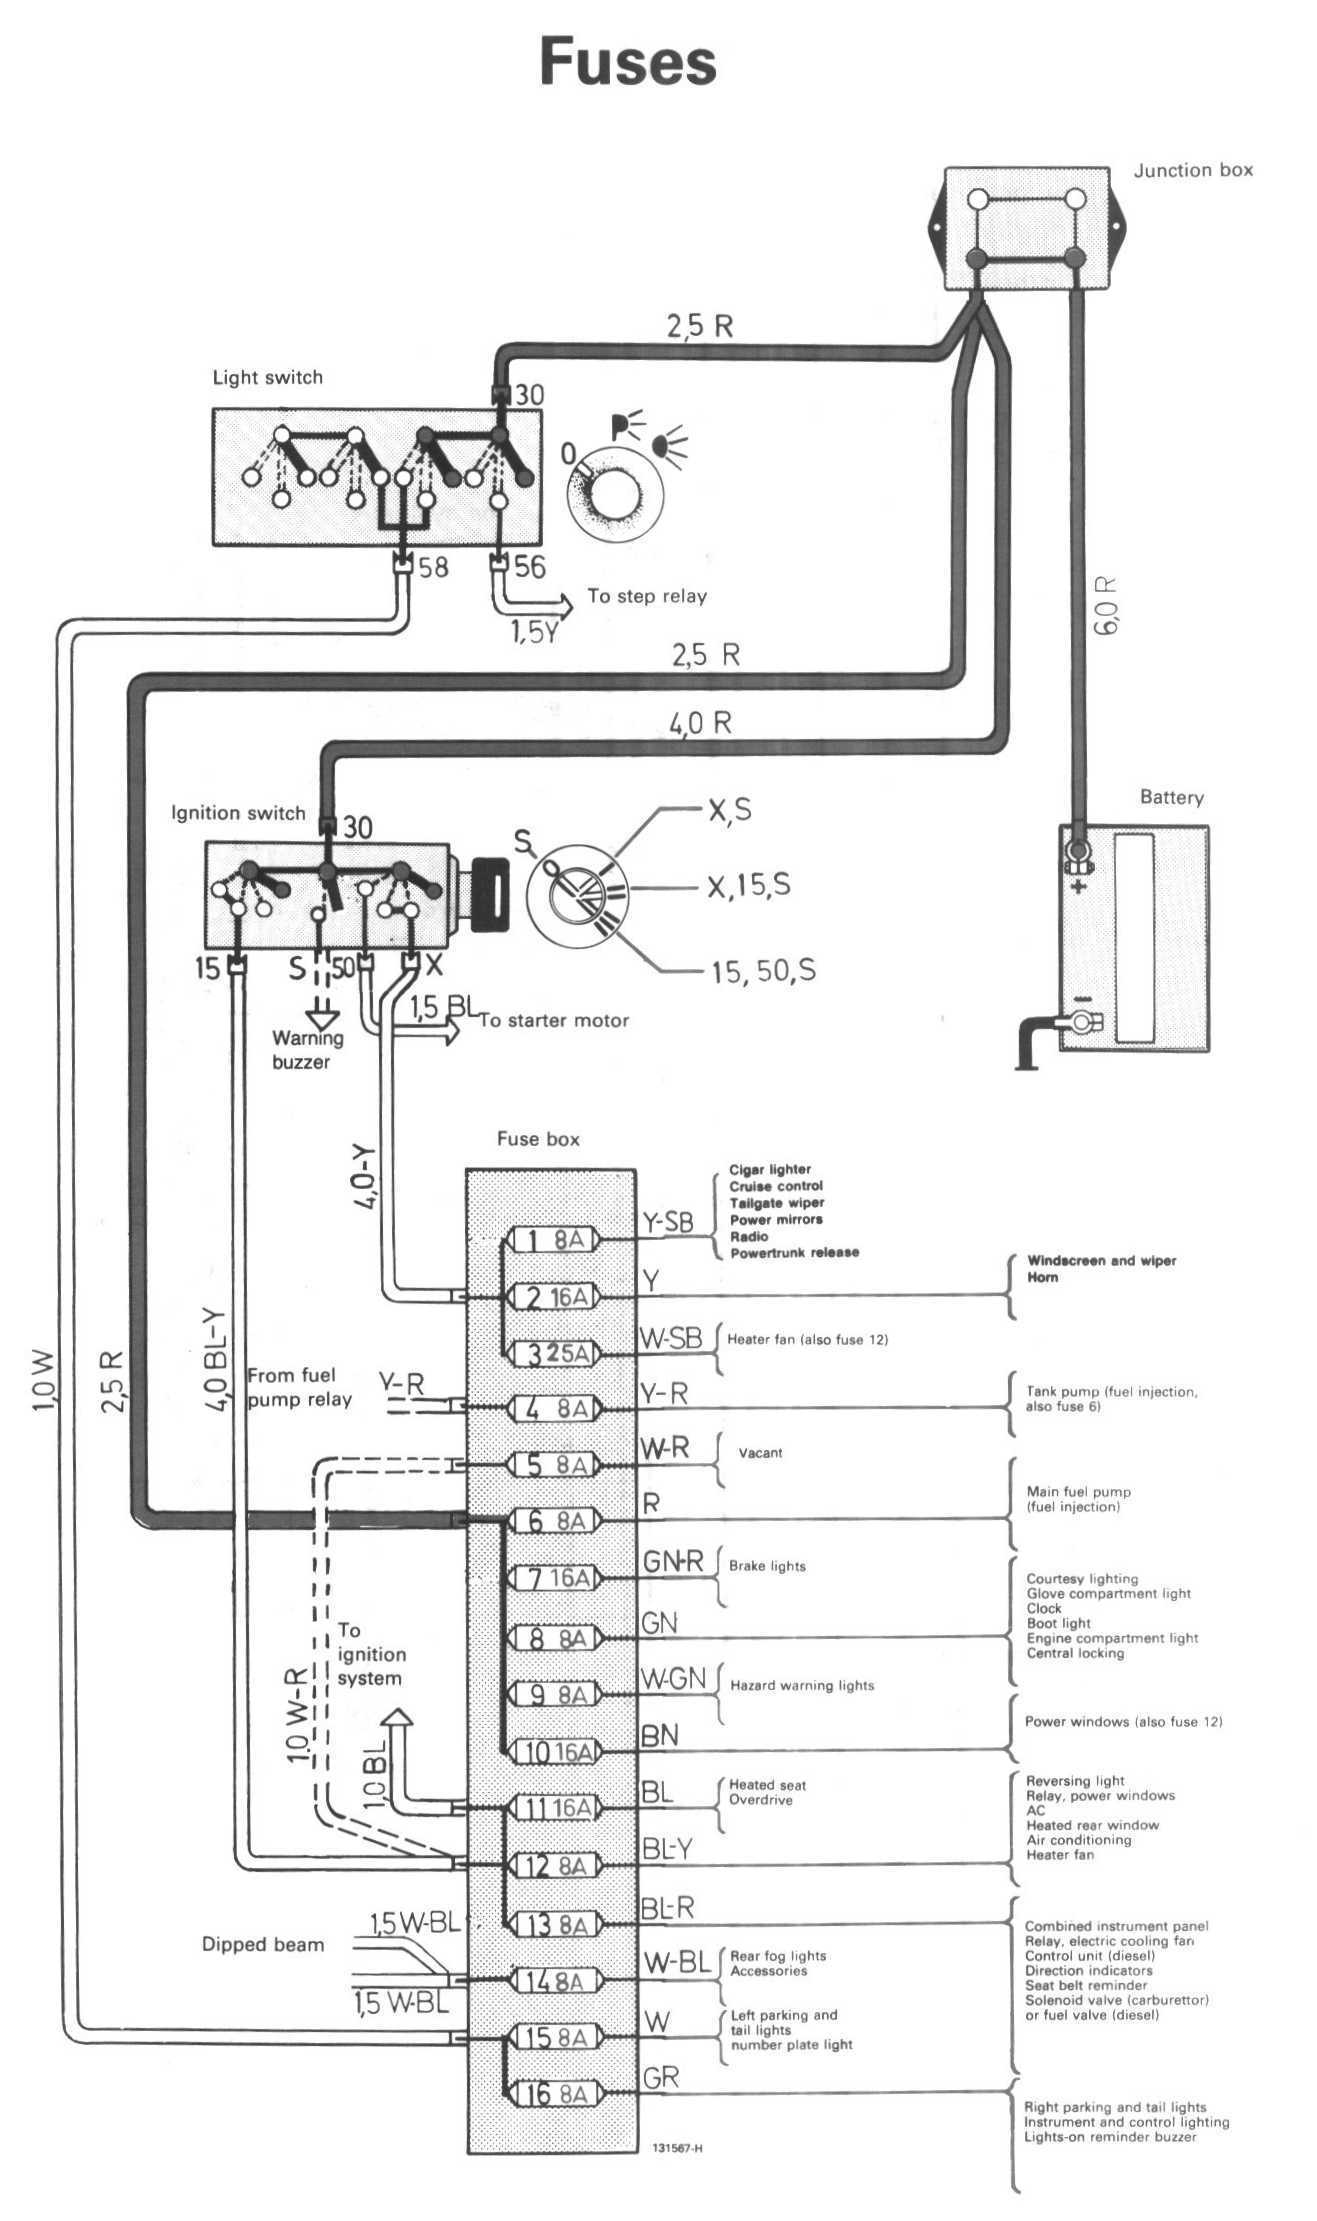 volvo 240 fuel pump relay wiring diagram   40 wiring diagram images